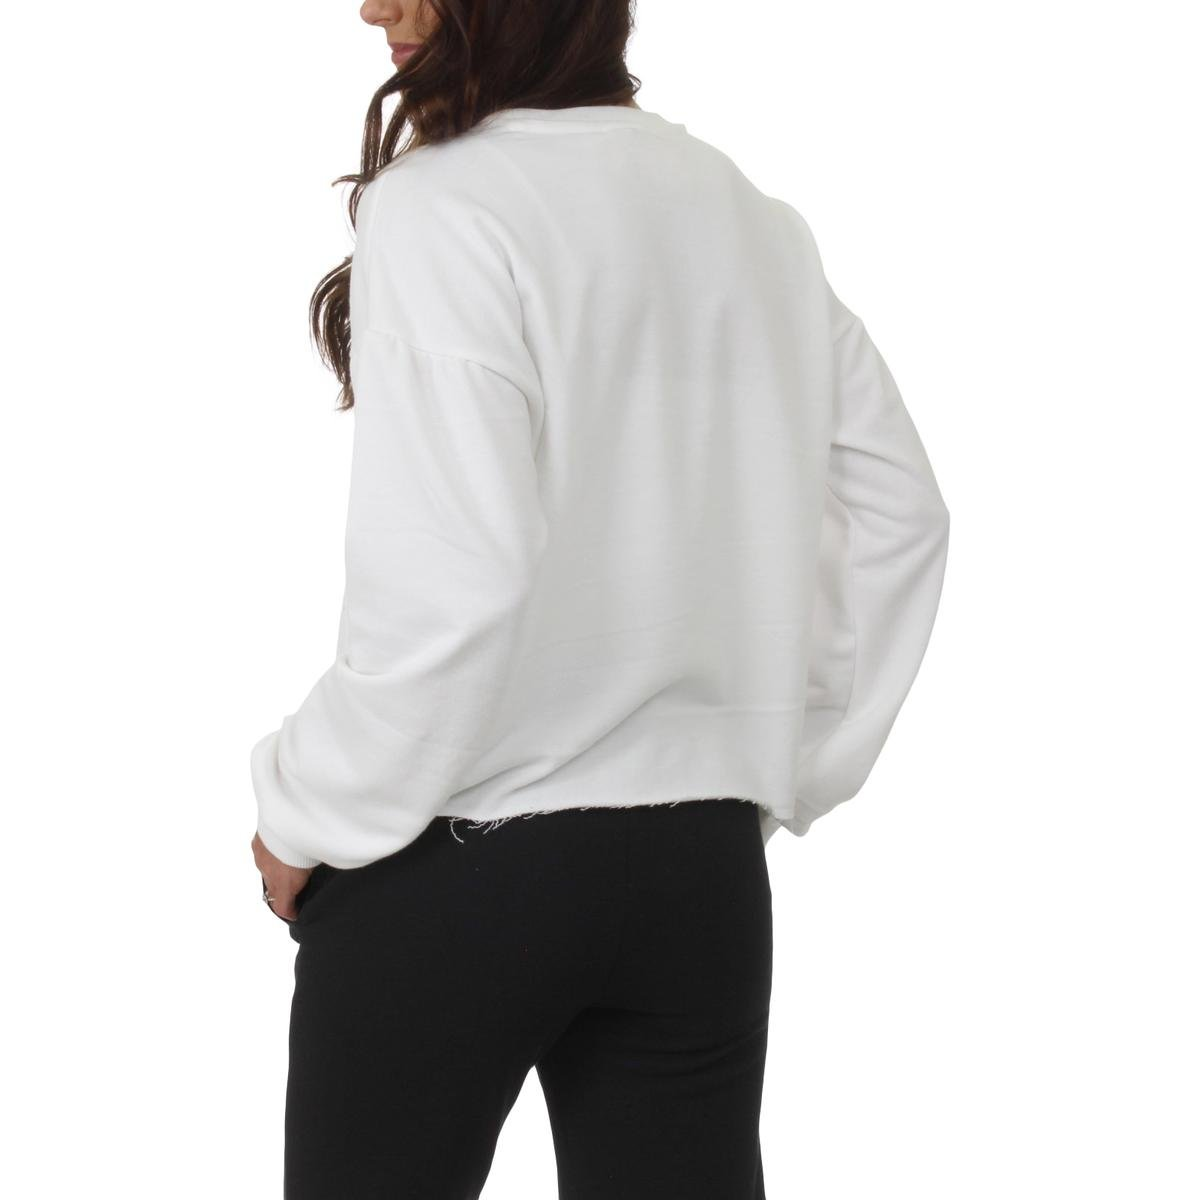 Juicy Couture Womens French Terry Logo Sweatshirt White XL by Juicy Couture (Image #2)